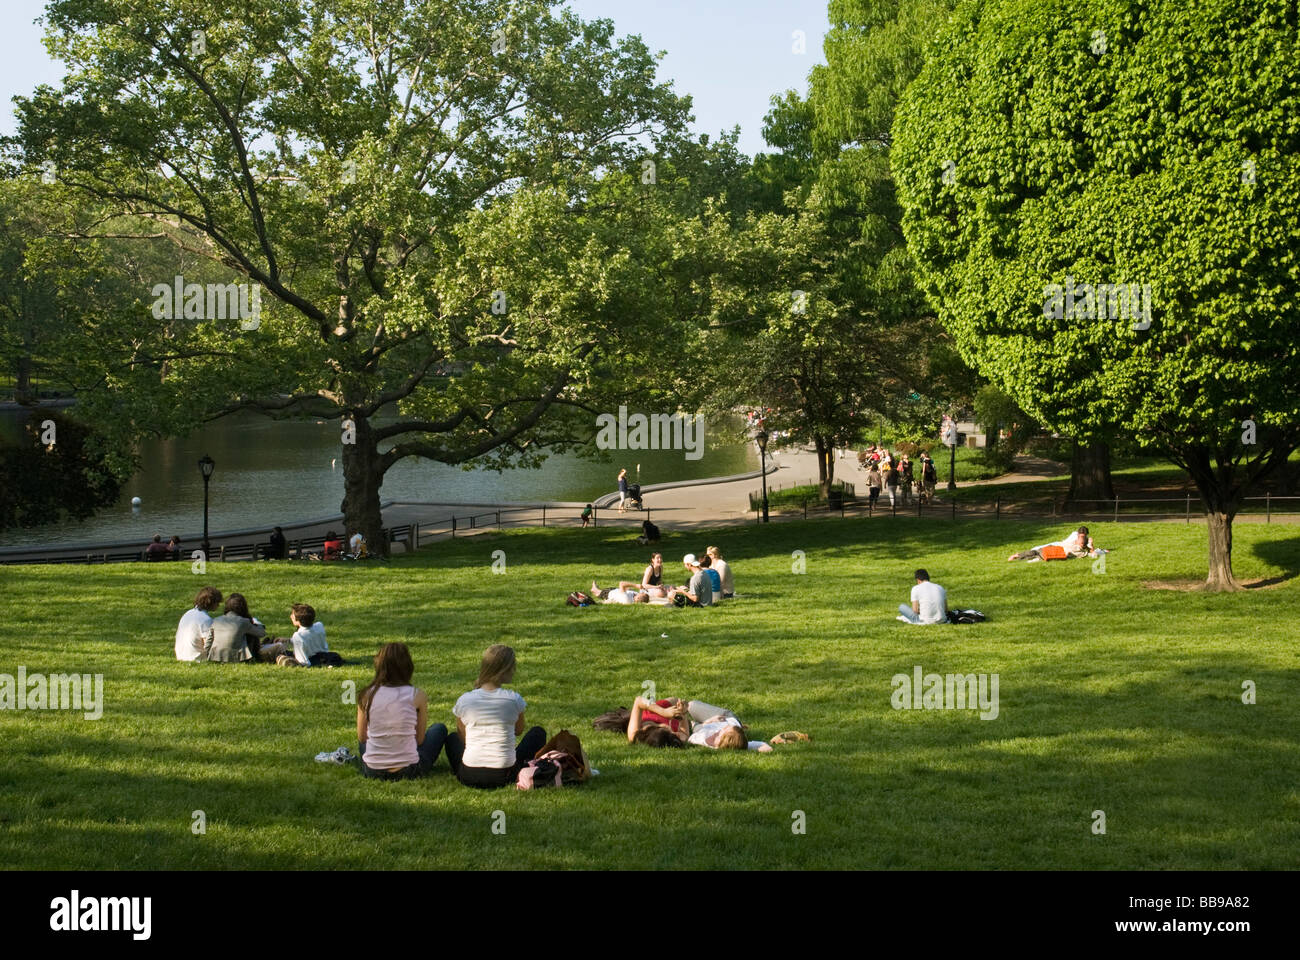 People Relaxing on the lawn by the Conservatory Water in Central Park New York City - Stock Image